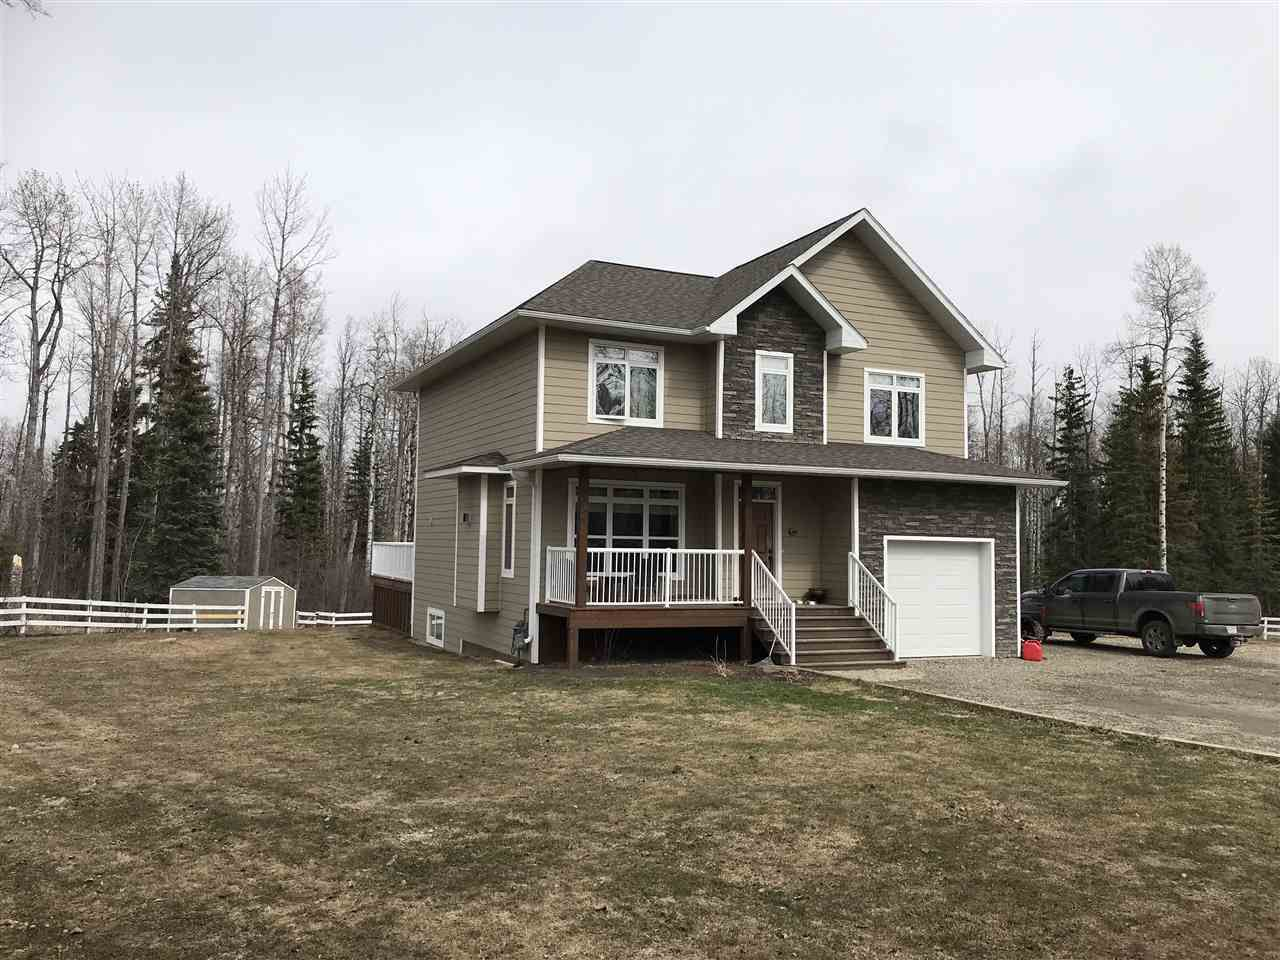 Main Photo: 13559 281 Road: Charlie Lake House for sale (Fort St. John (Zone 60))  : MLS®# R2365322